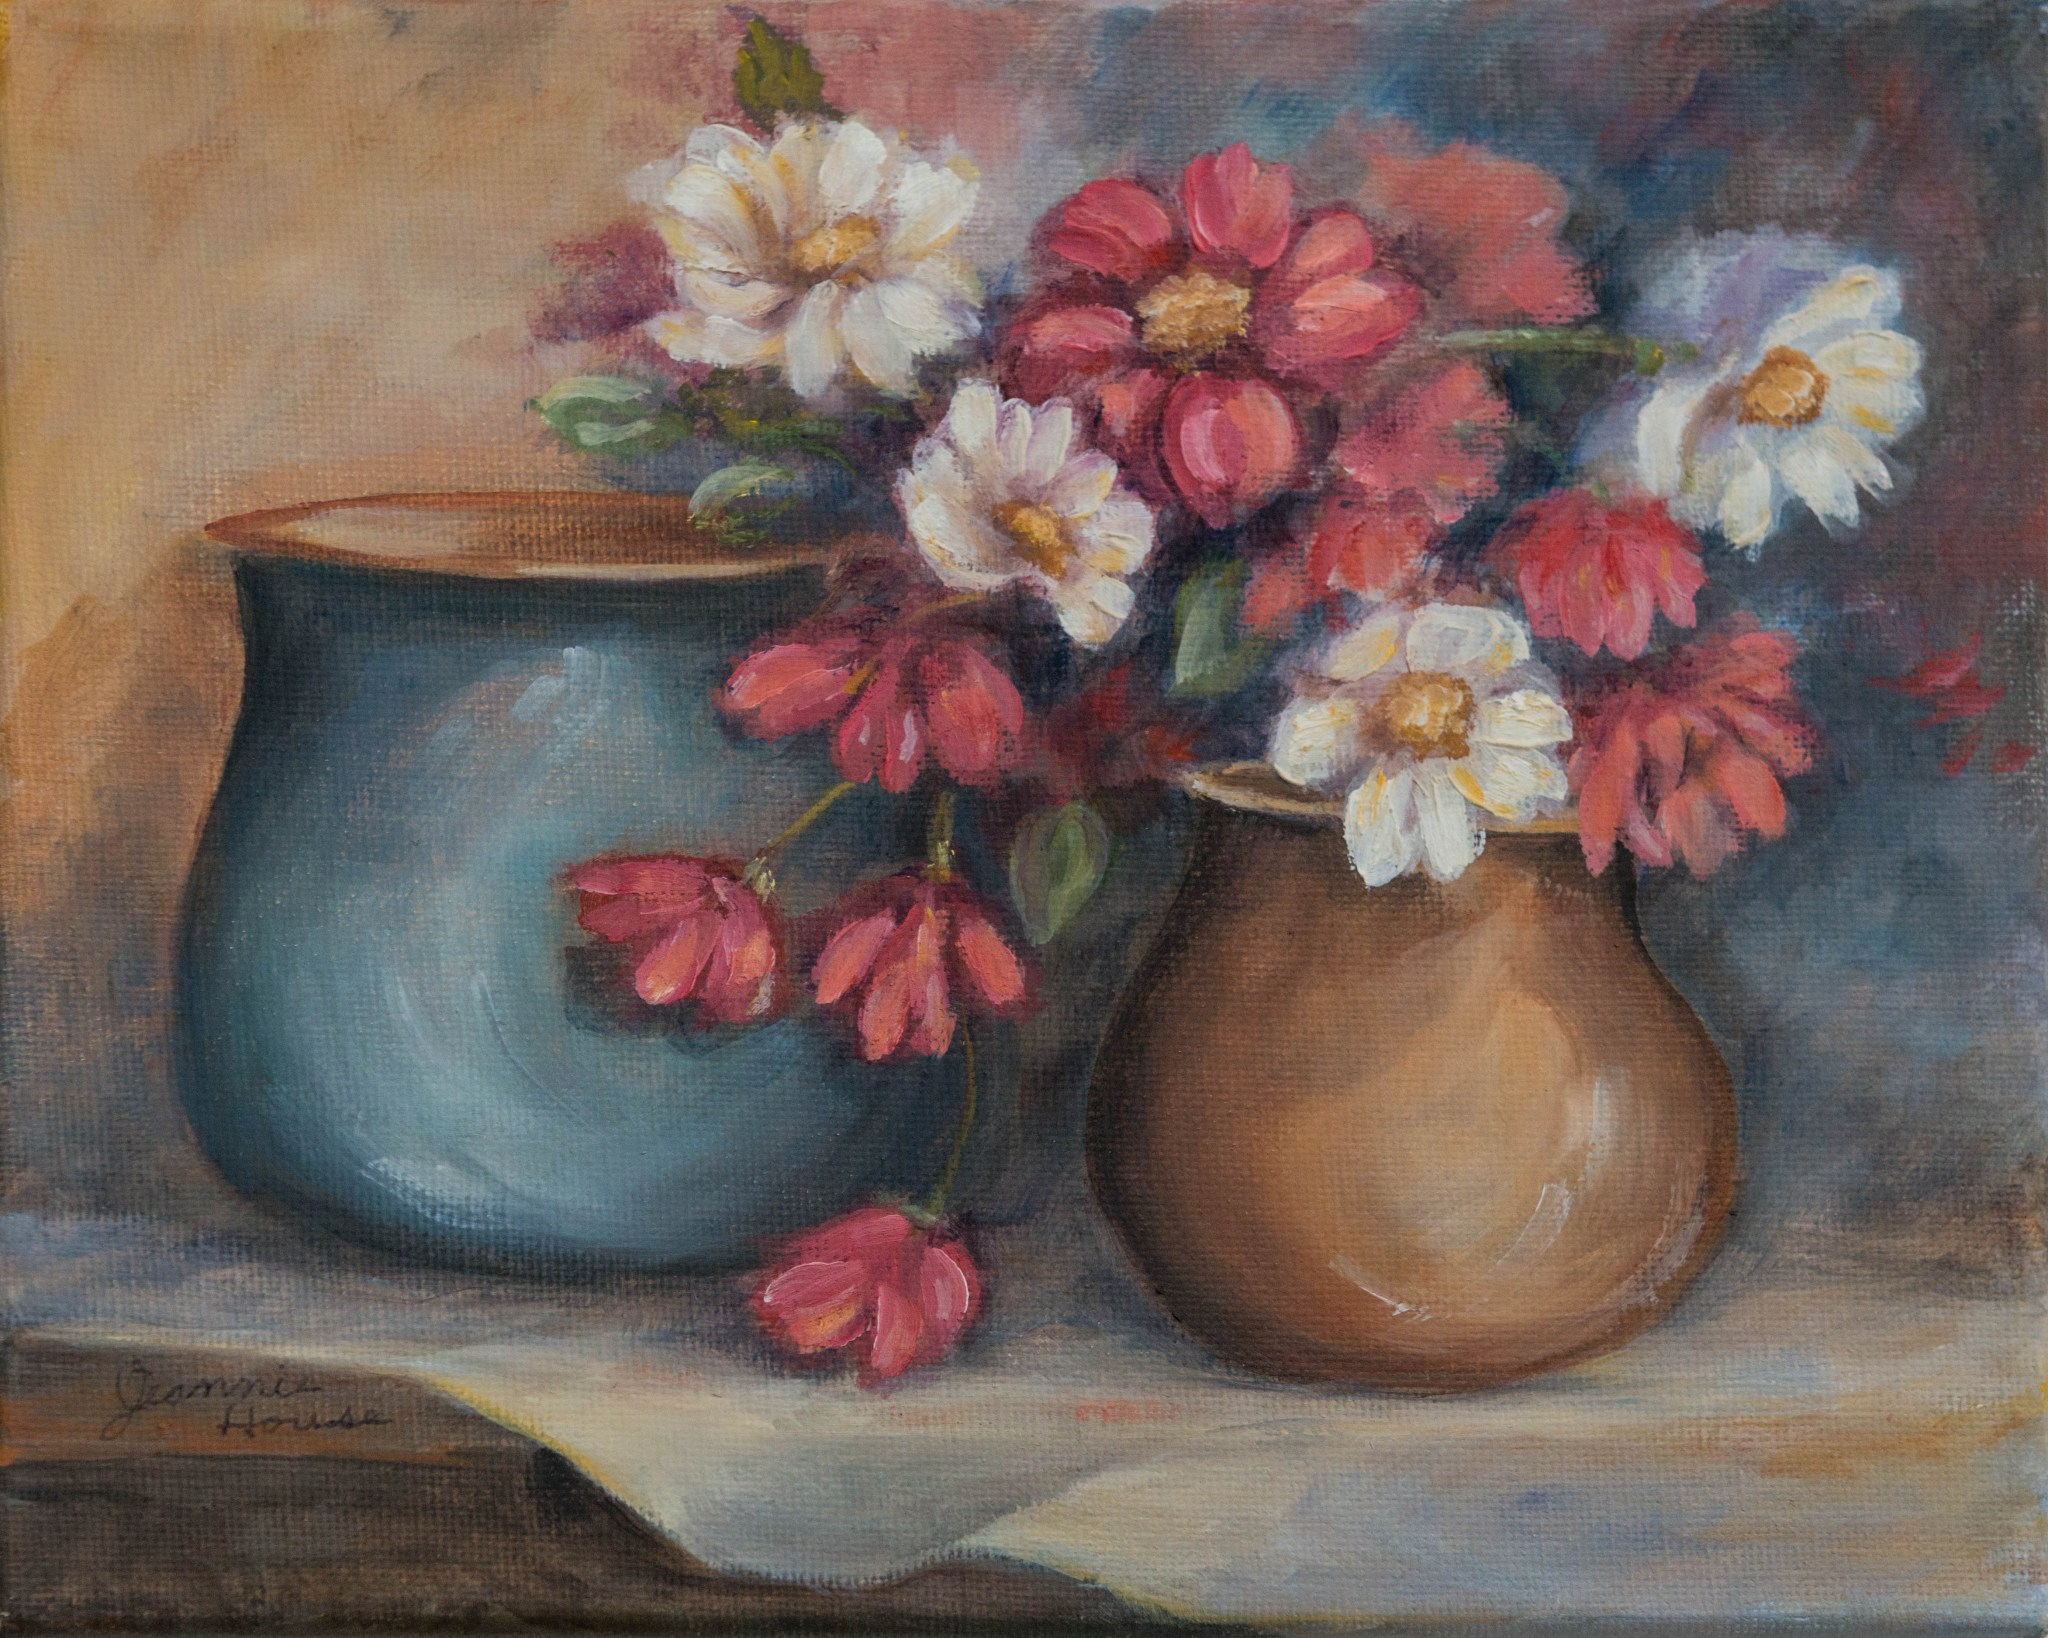 Southwest Bouquet by Jeannie House